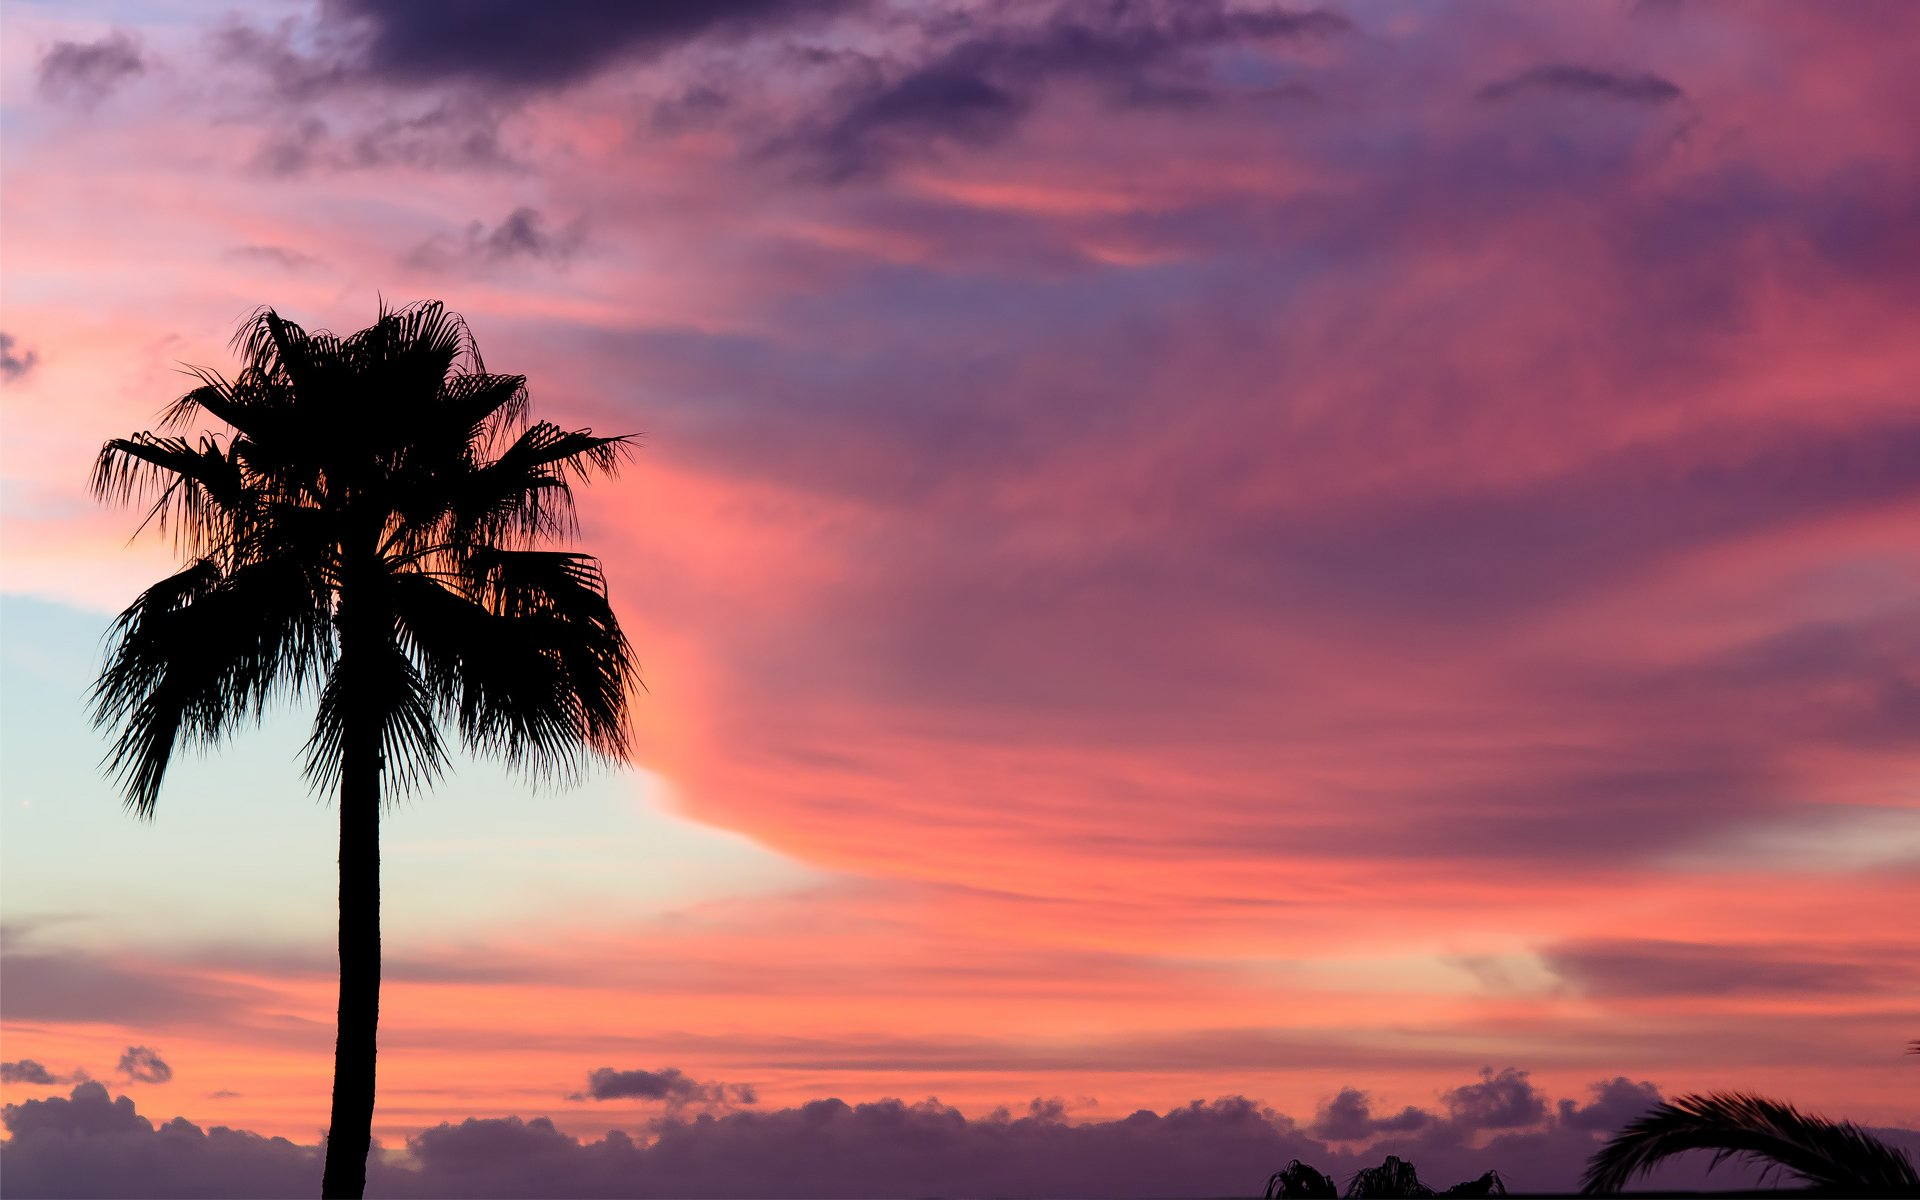 Sunset sky clouds palm trees wallpaper 1920x1200 71501 1920x1200